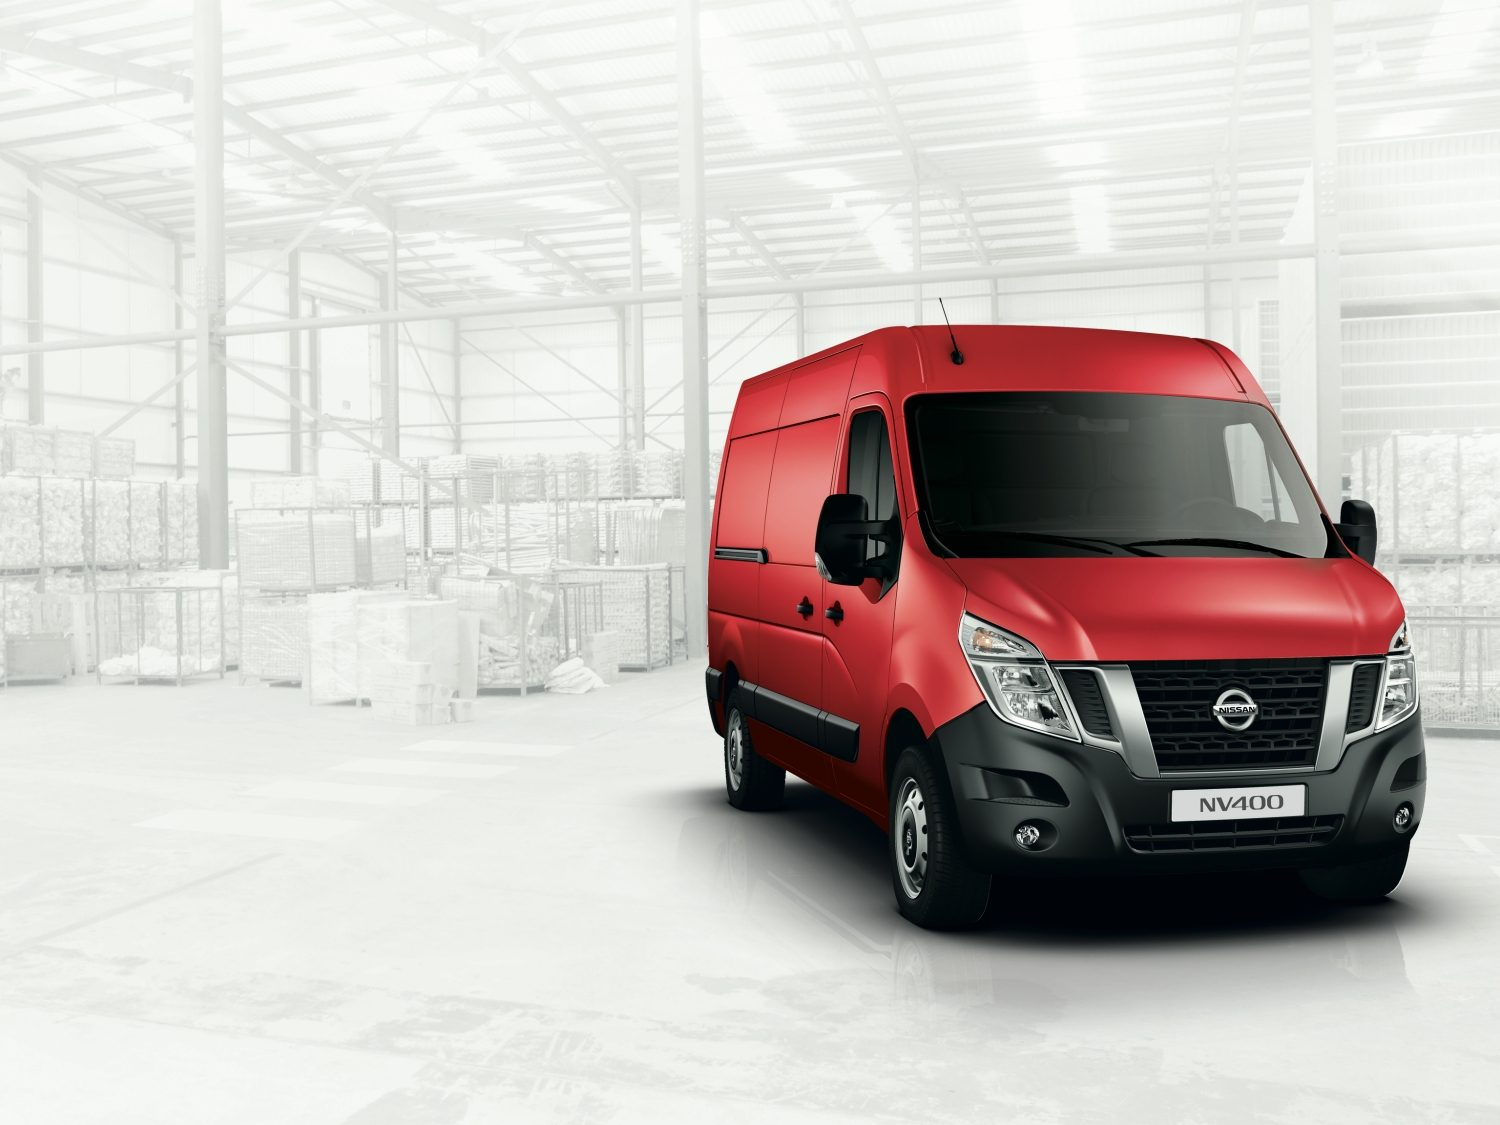 Nissan NV400 ROUGE - Traction